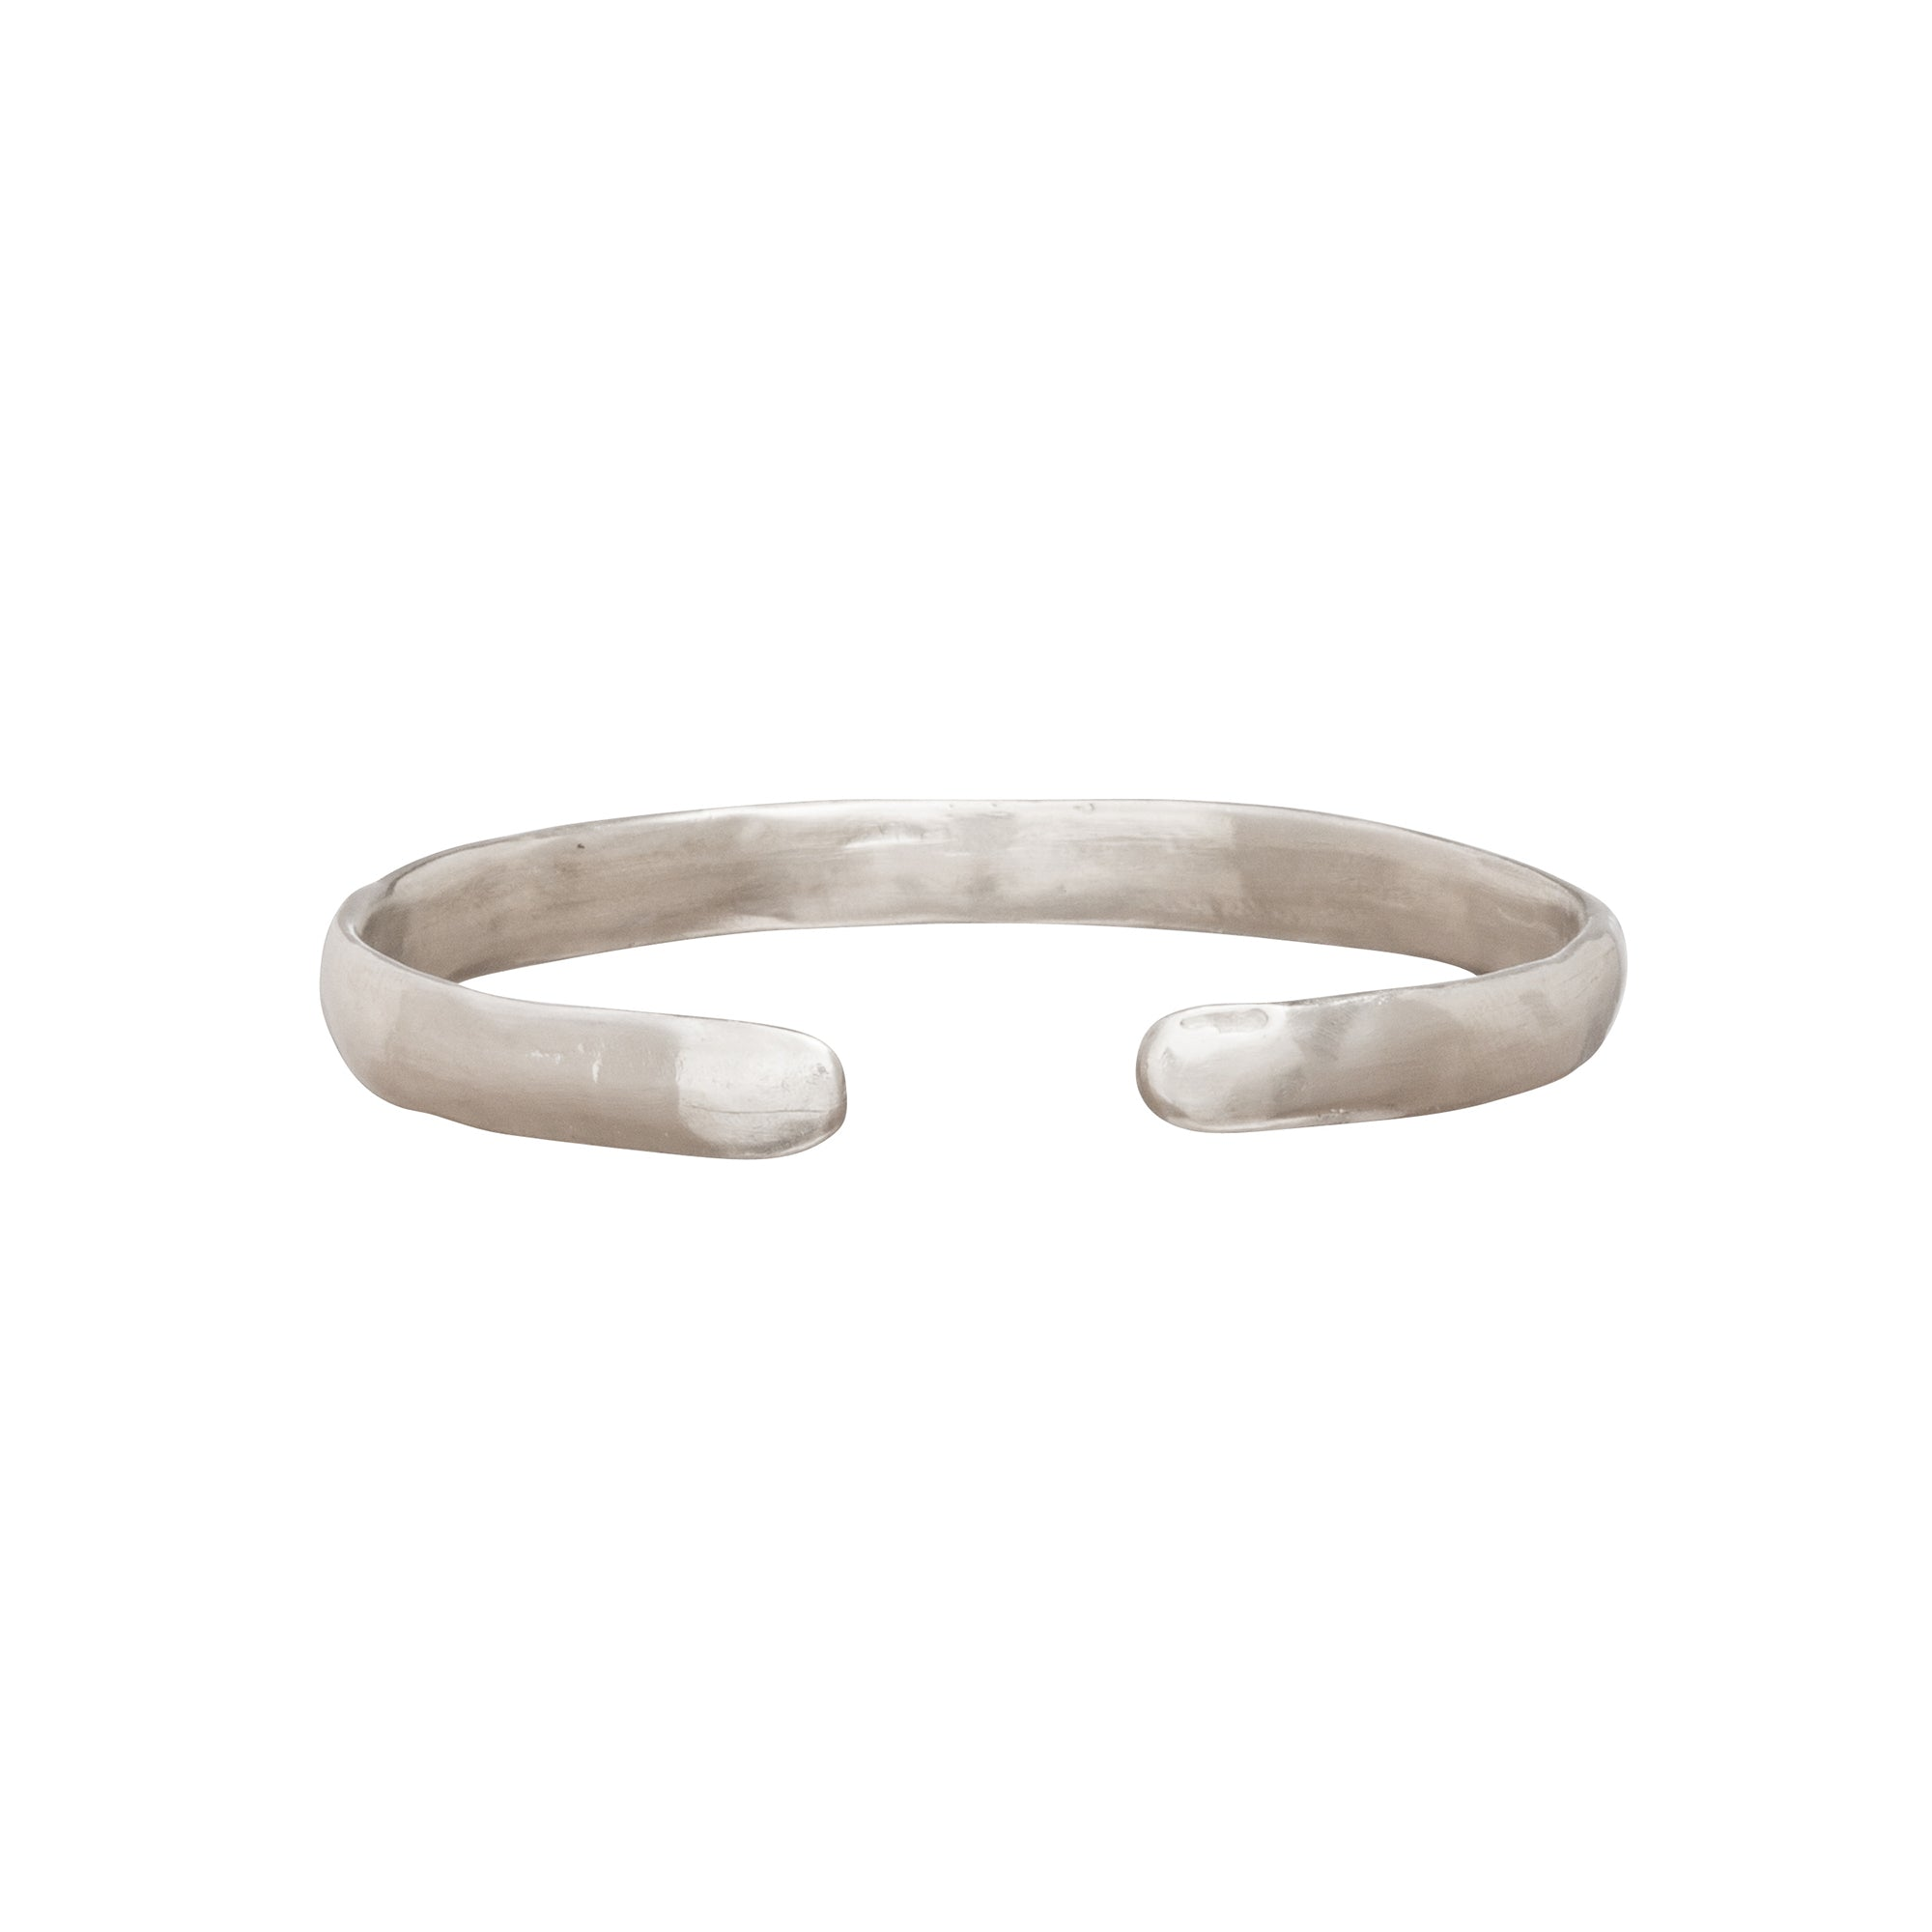 Large Silver Bangle by James Colarusso for Broken English Jewelry